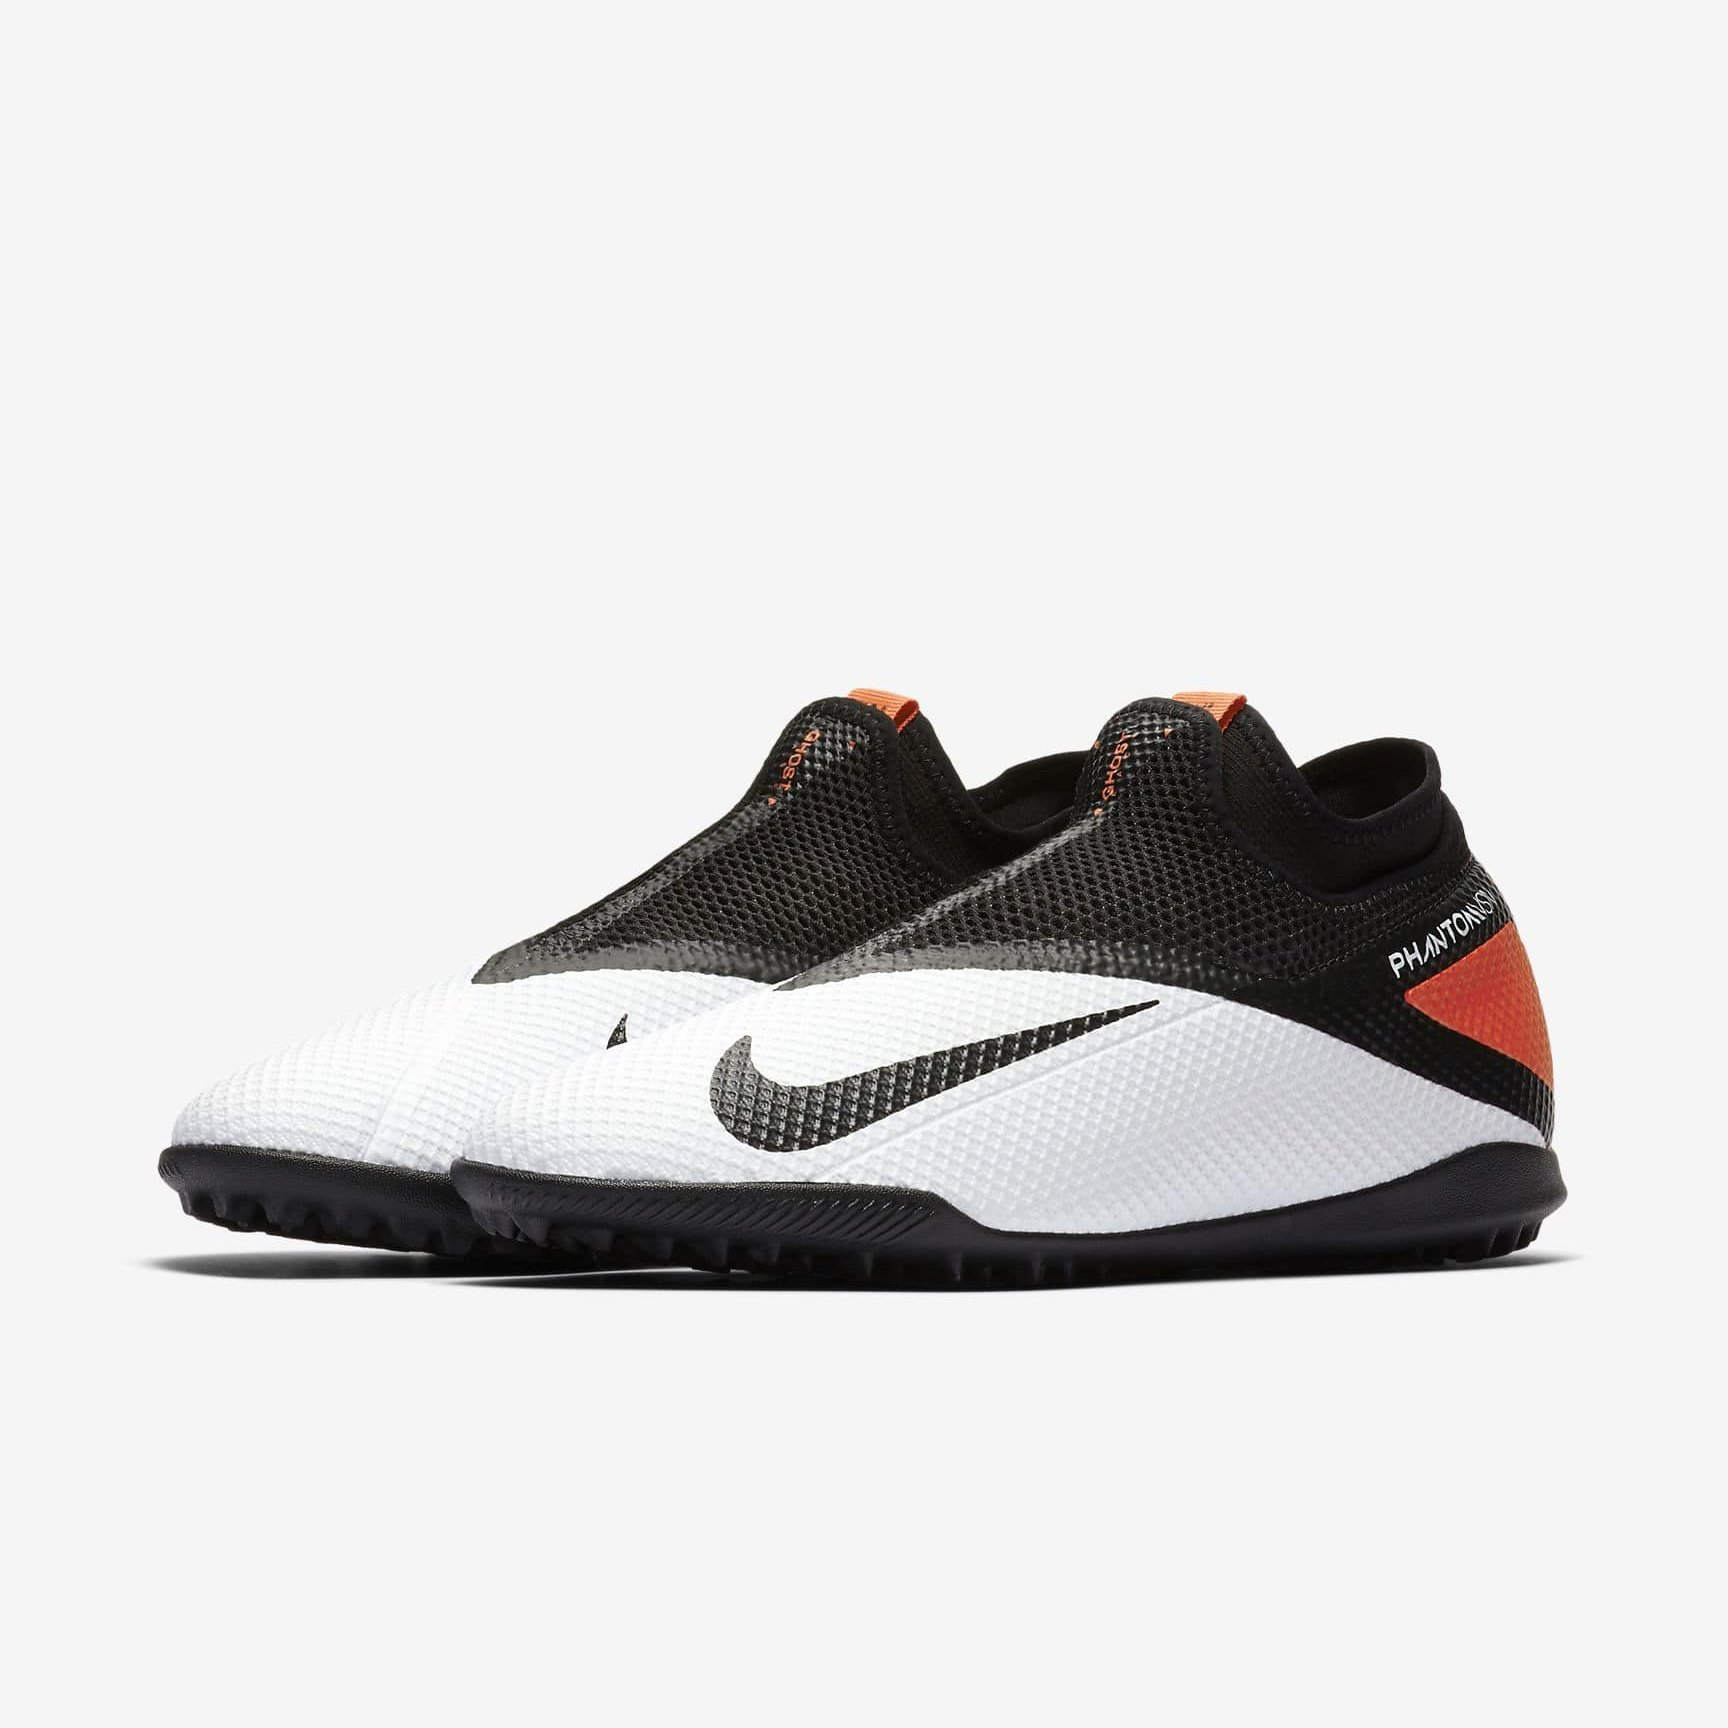 Шиповки Nike Phantom Vsn 2 Academy DF TF